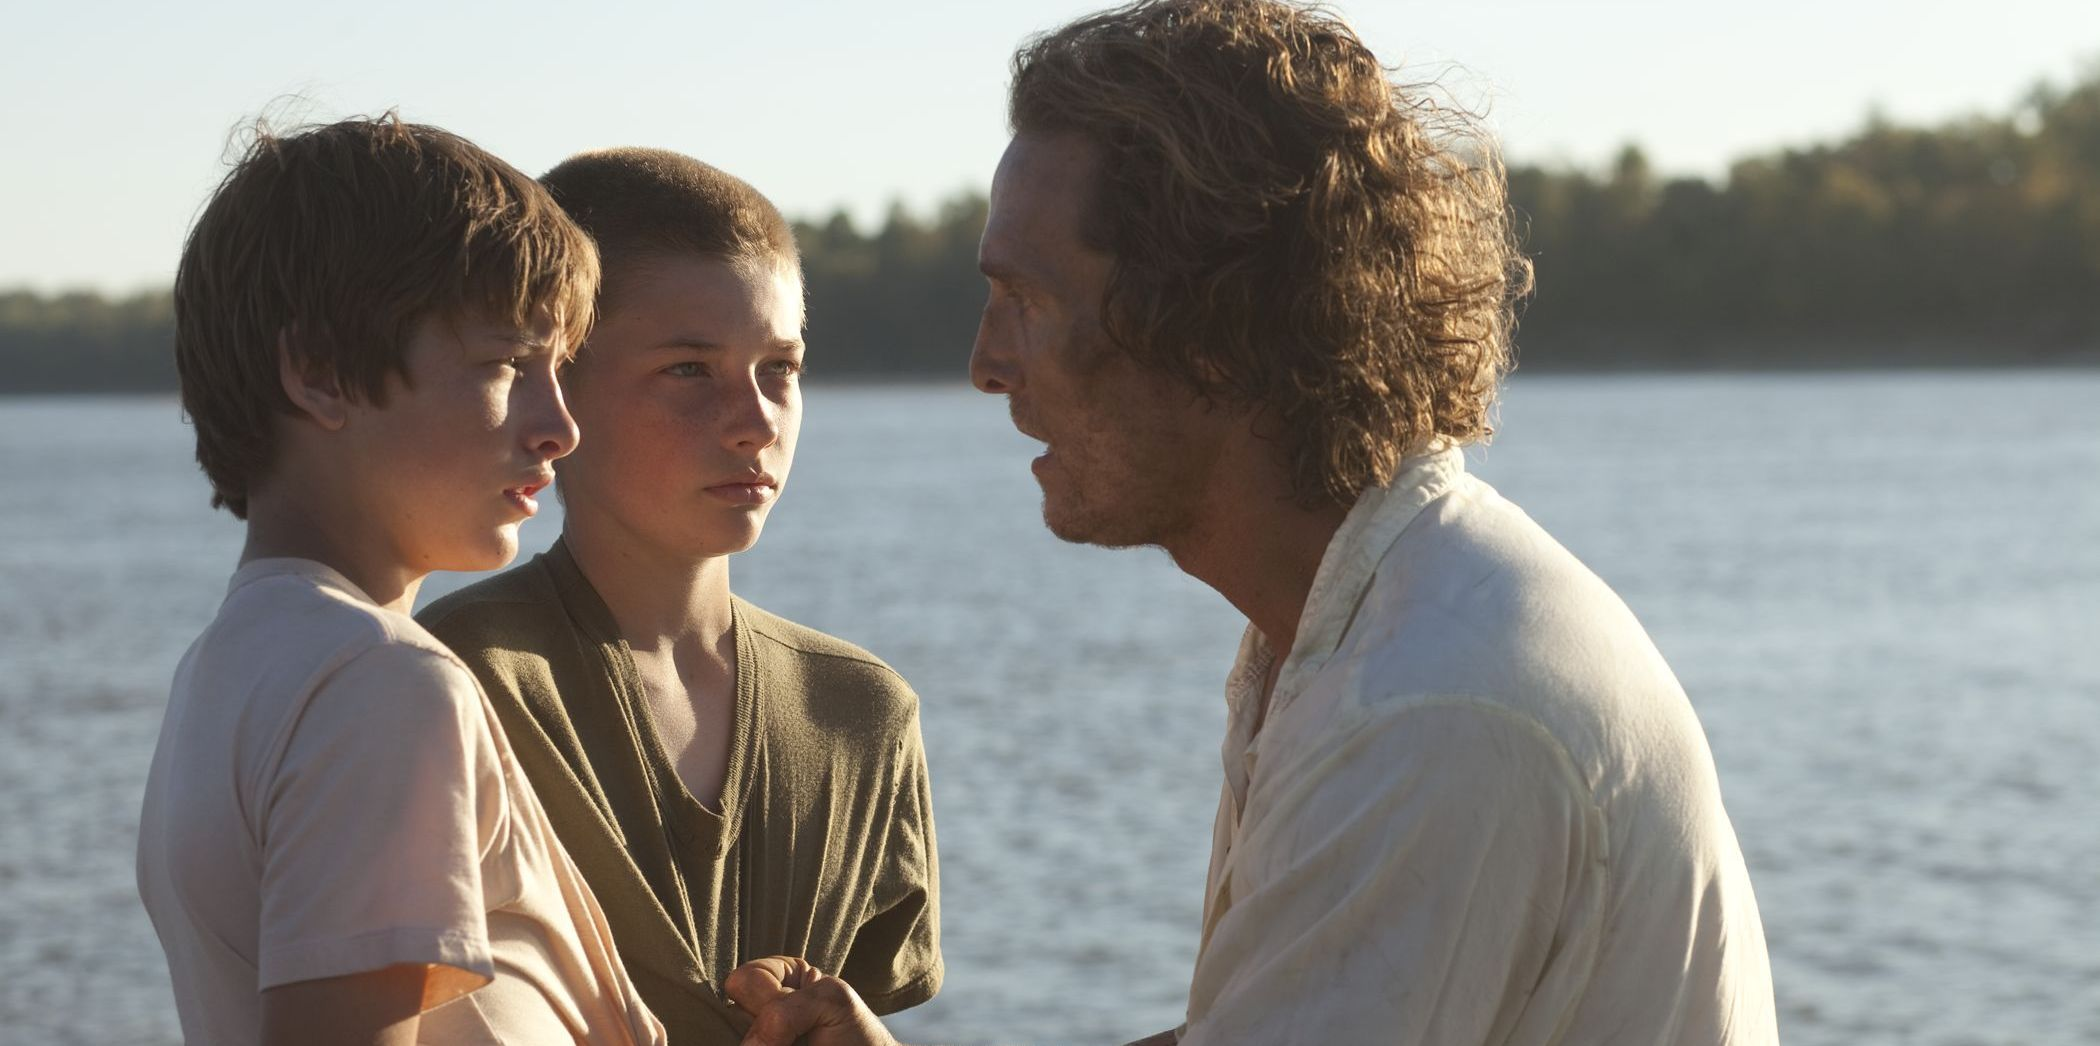 Top 15 Independent Films Of 2013